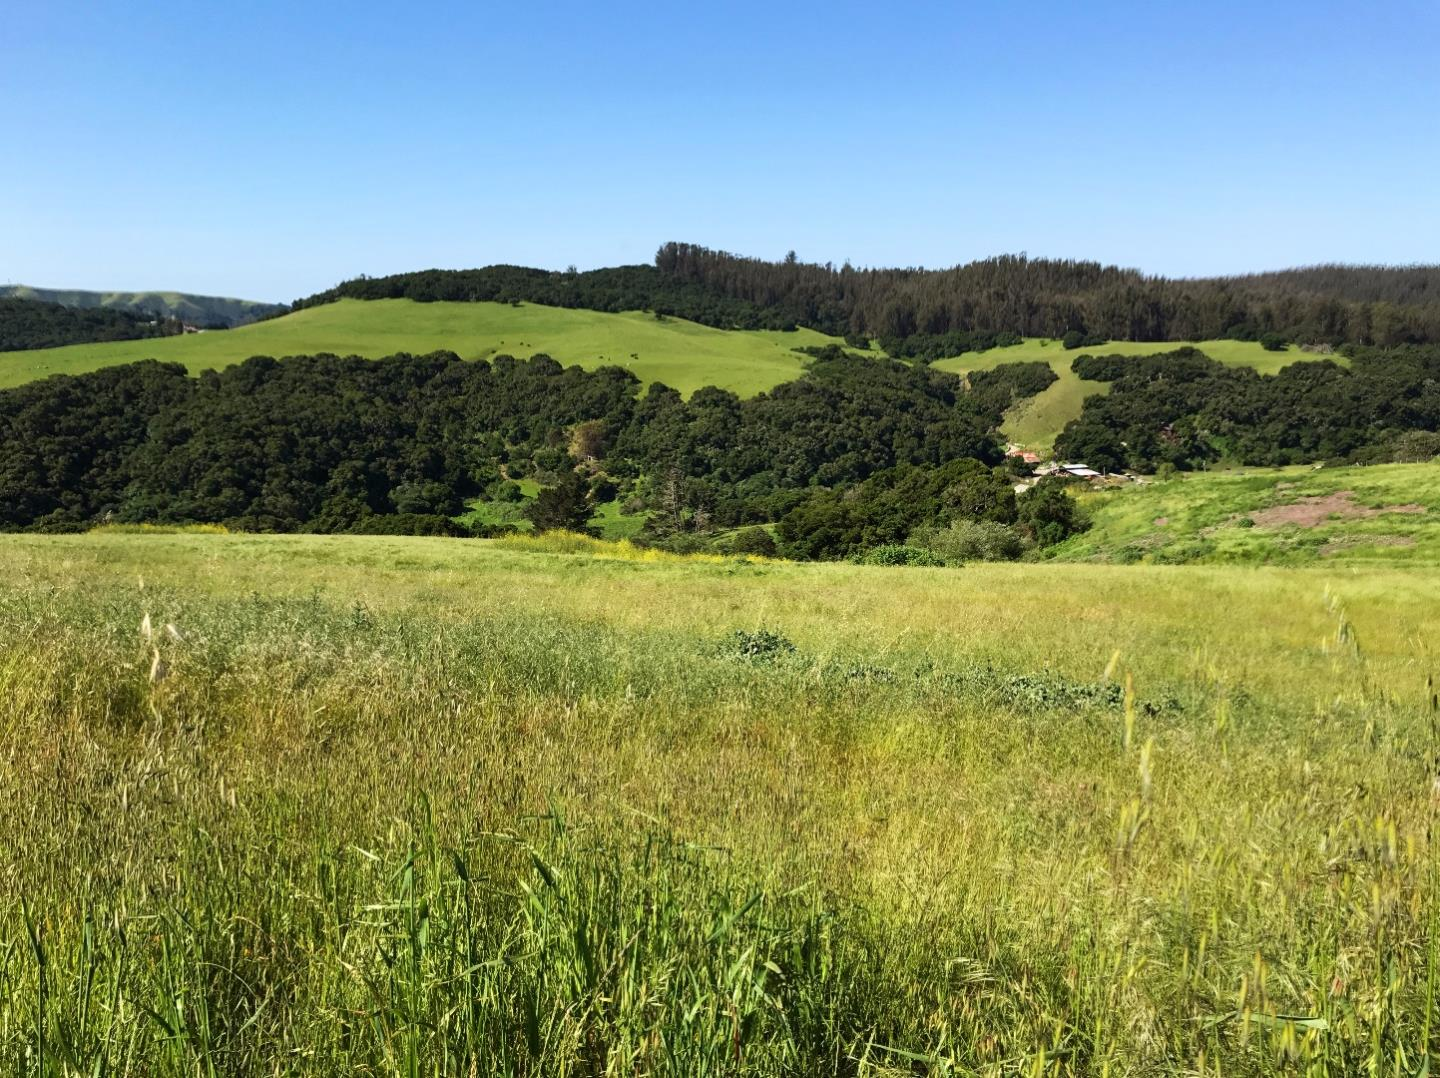 Additional photo for property listing at 2000 School Road  San Juan Bautista, California 95045 United States